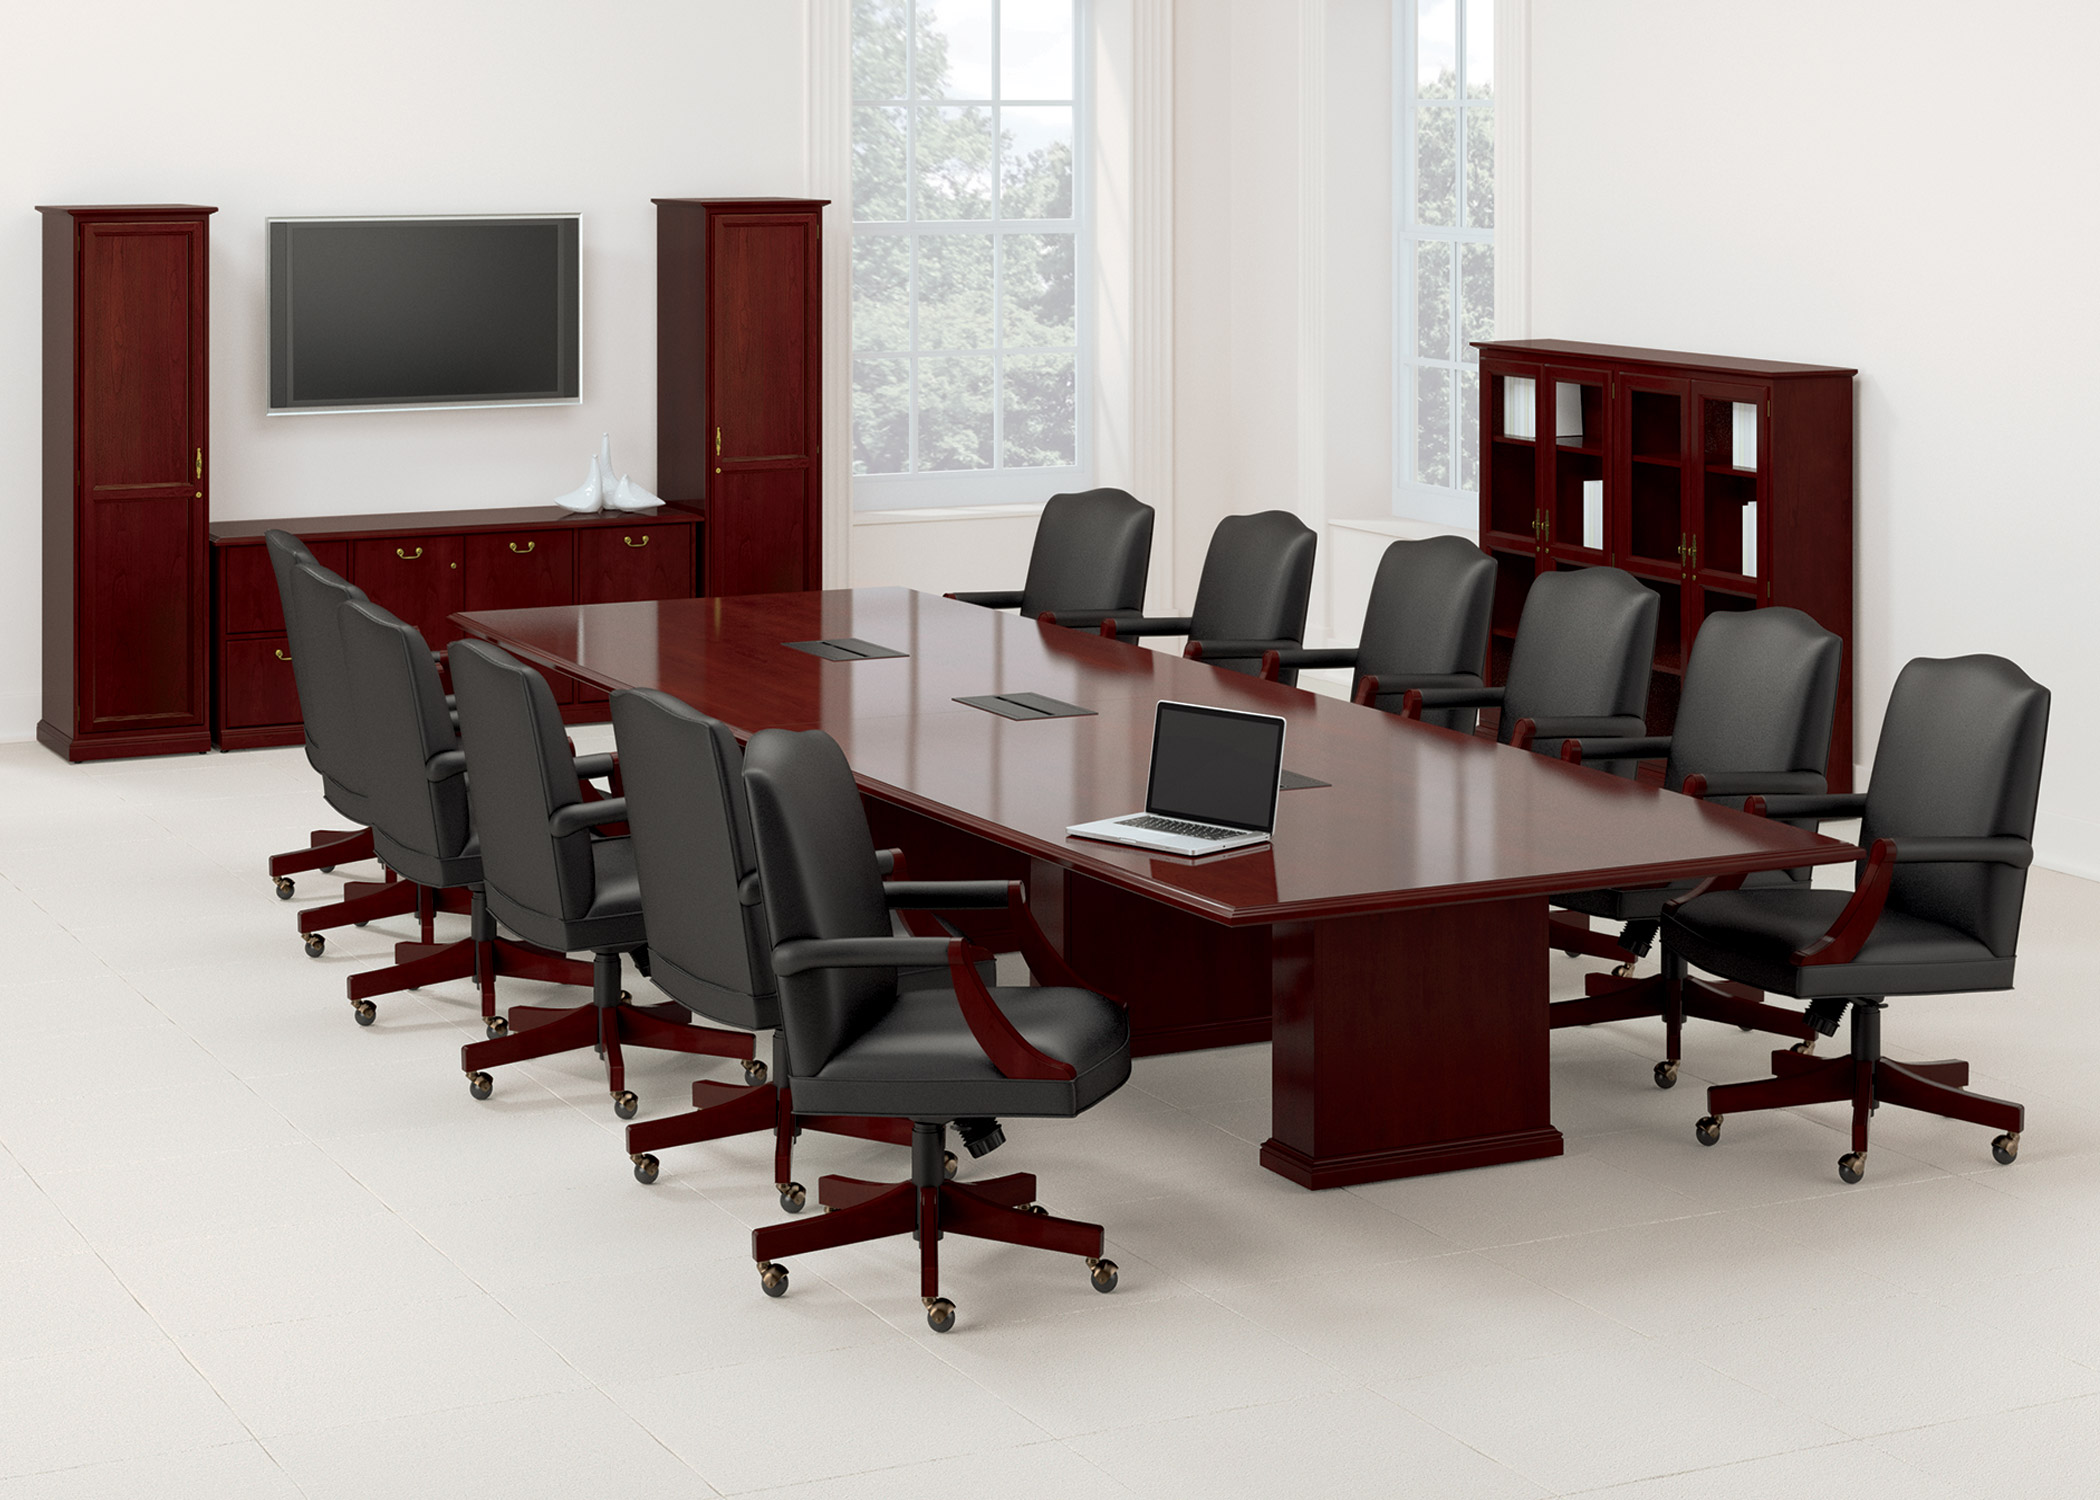 furnitureconference room pictures meetings office meeting. Barrington Table (National Office Furniture) Conference Room Tables Furnitureconference Pictures Meetings Meeting Ubiq